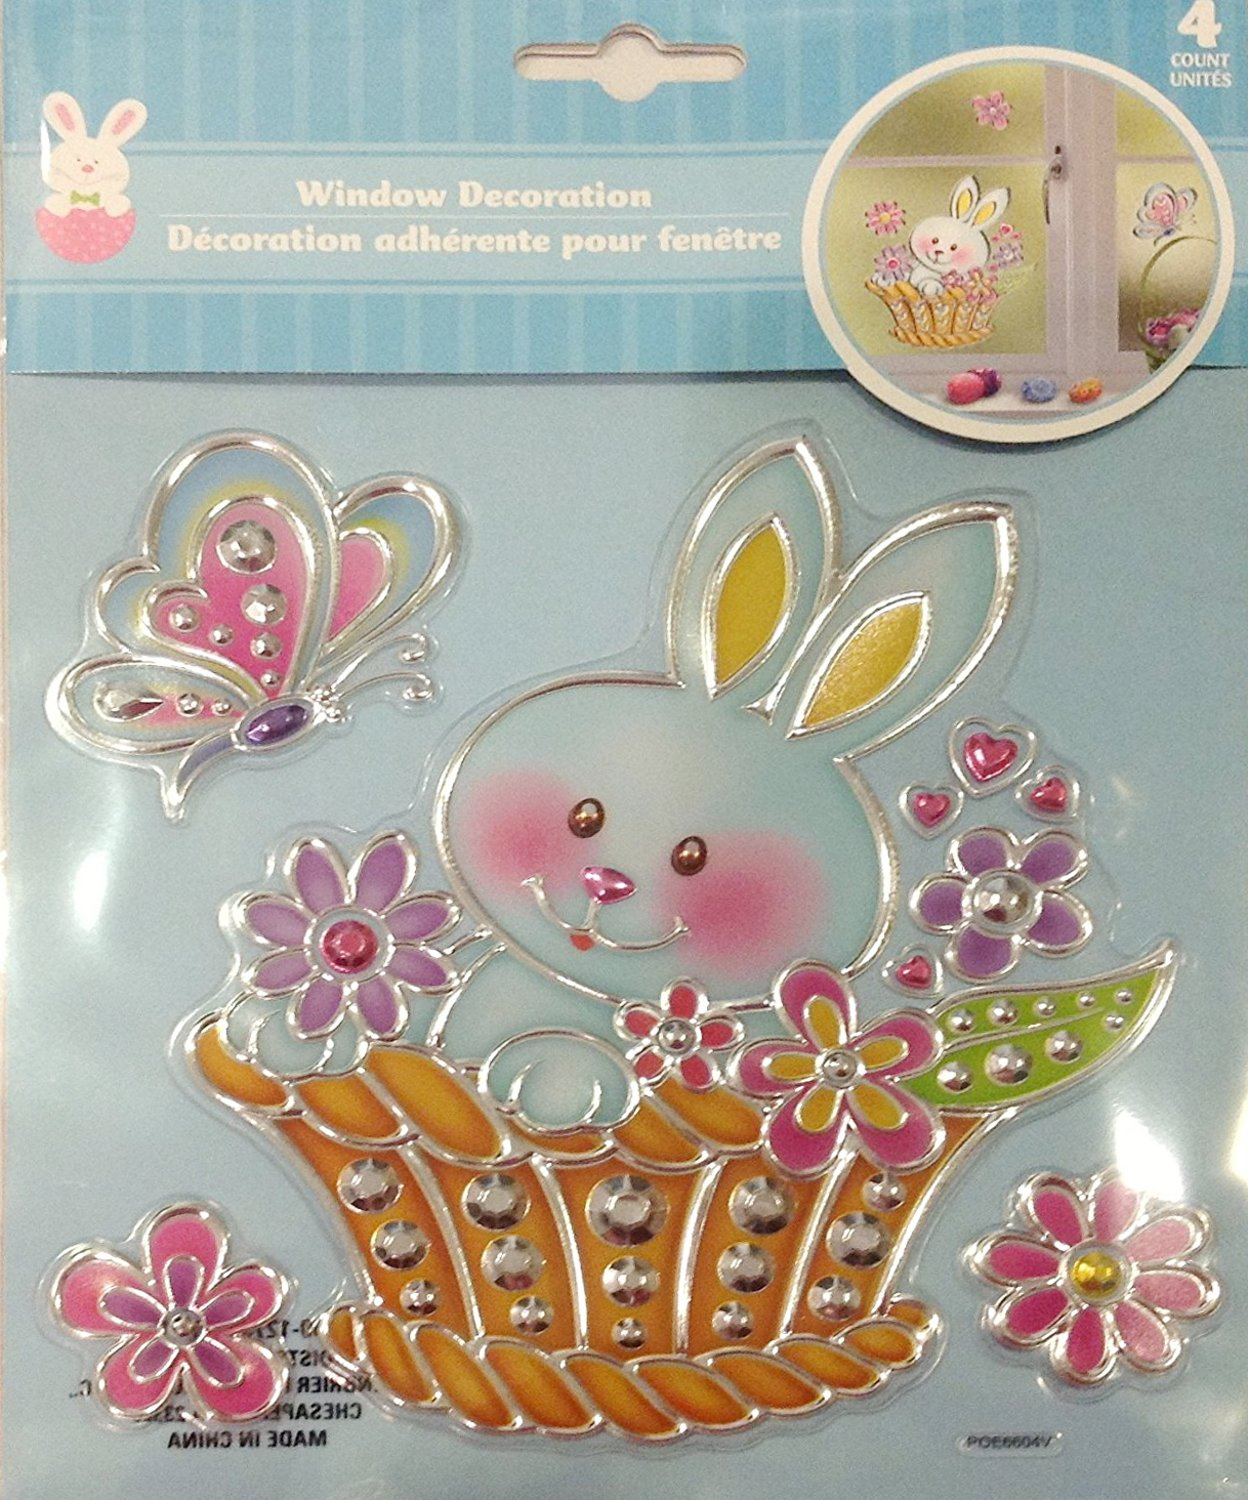 Easter Spring Window Decoration Bundle - Adorable Bunny Ducky and Chick Sun Catcher Window Decal Stickers (2-Pack Bunny & Chick) by EasterTime (Image #2)